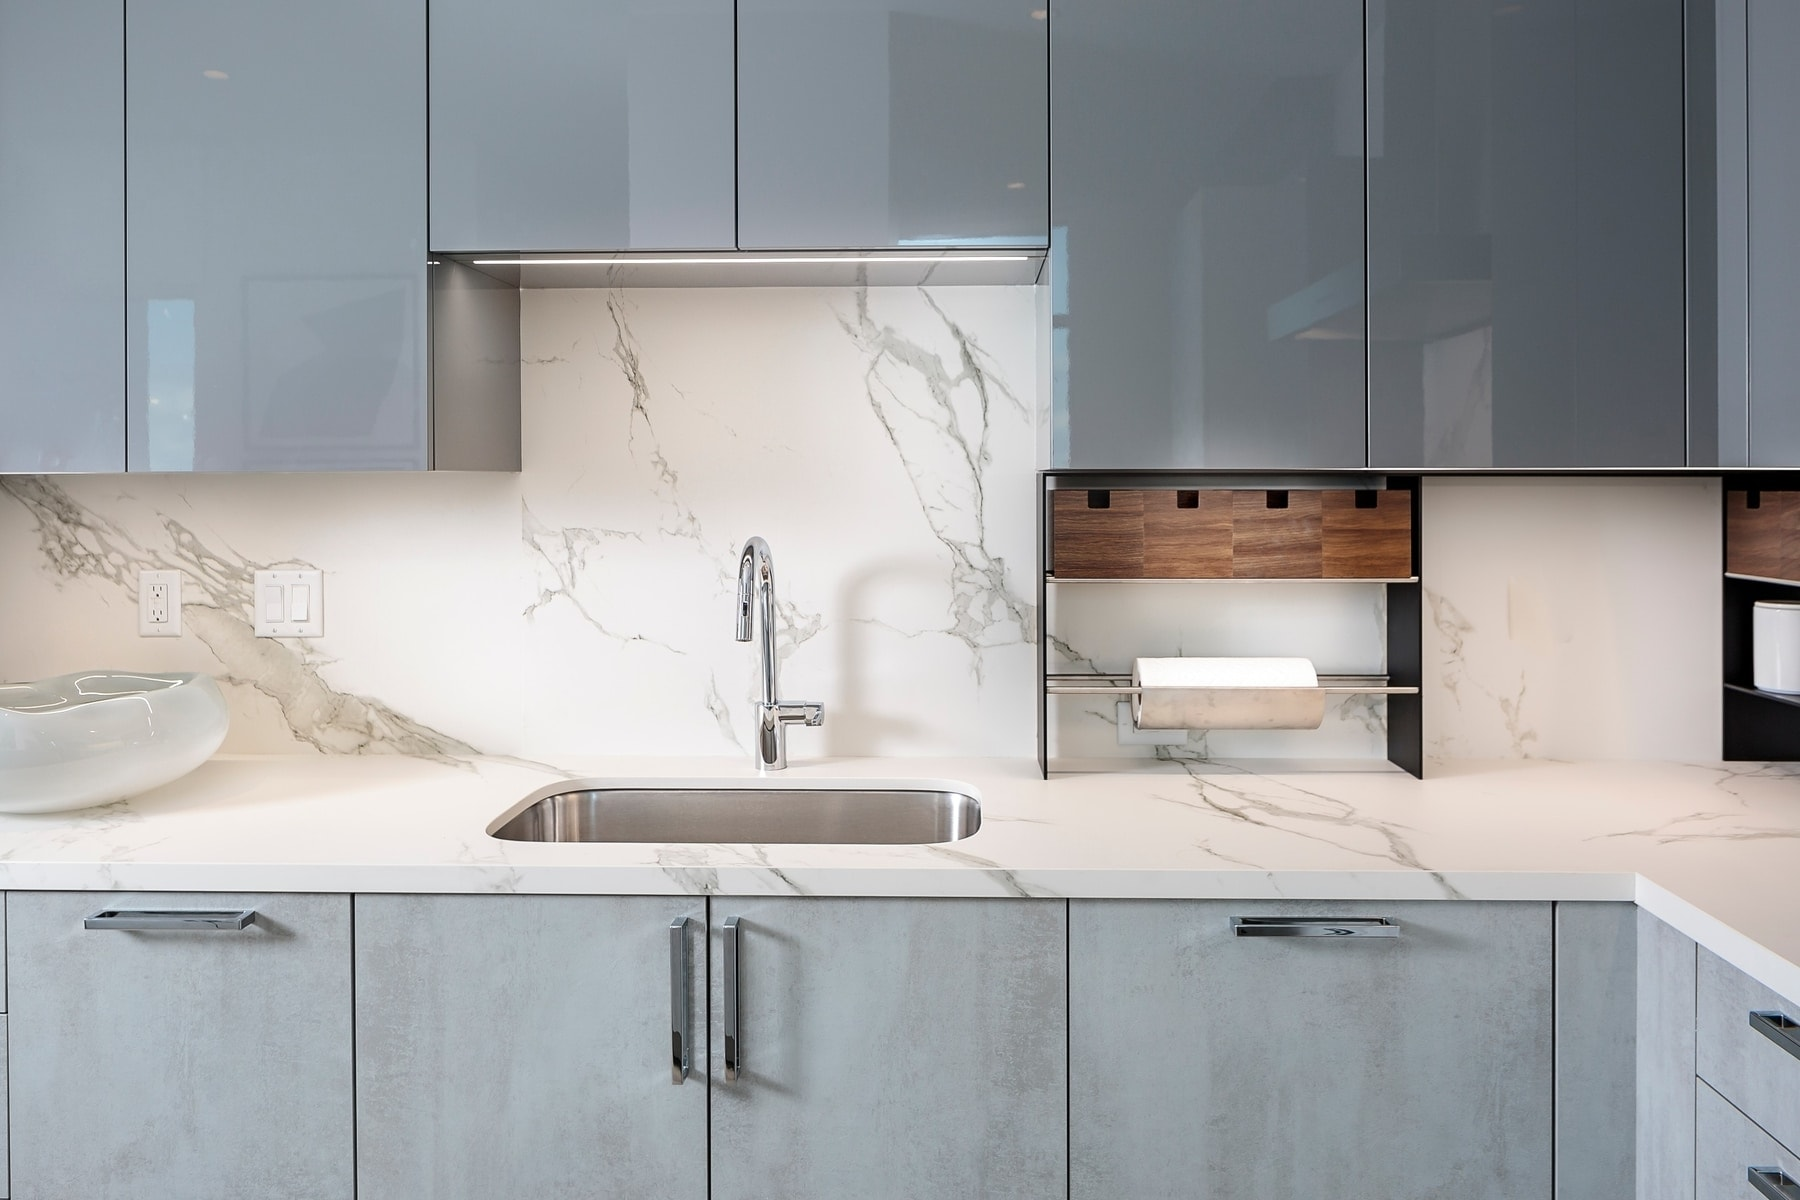 kitchen sink and german cabinetry in the model unit of arabella luxury condos in houston